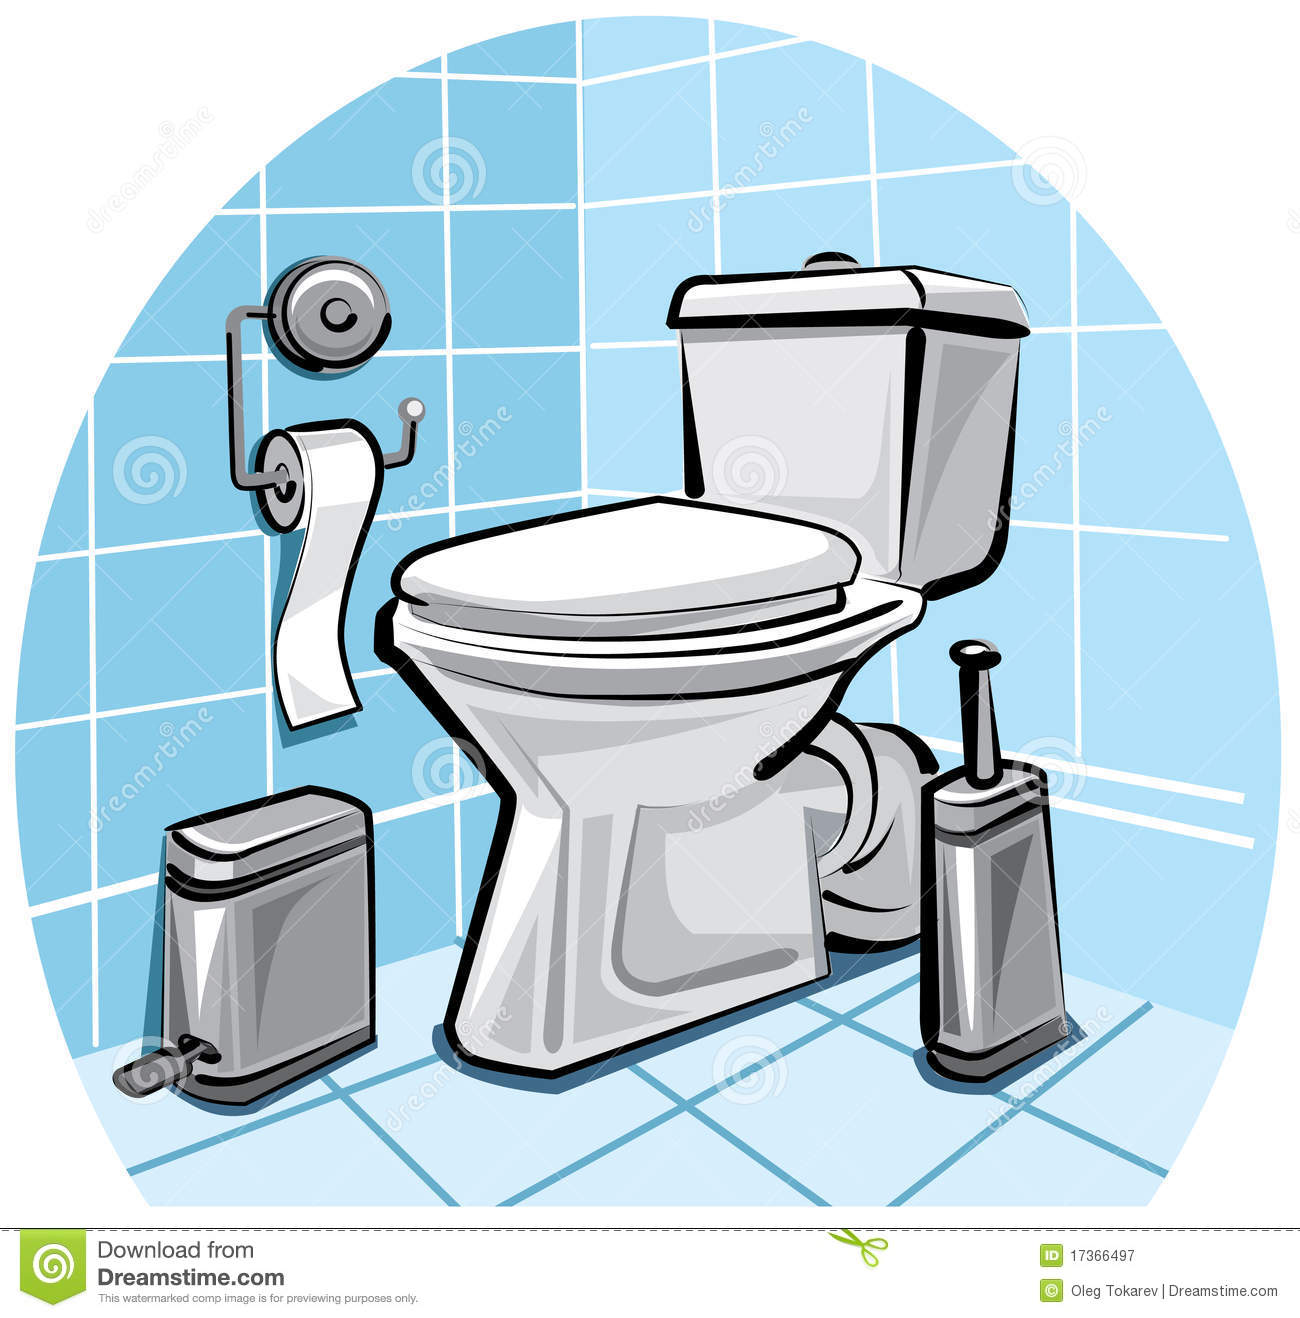 Cartoon toilets clipart graphic transparent Bathroom Clipart For Kids | Free download best Bathroom Clipart For ... graphic transparent